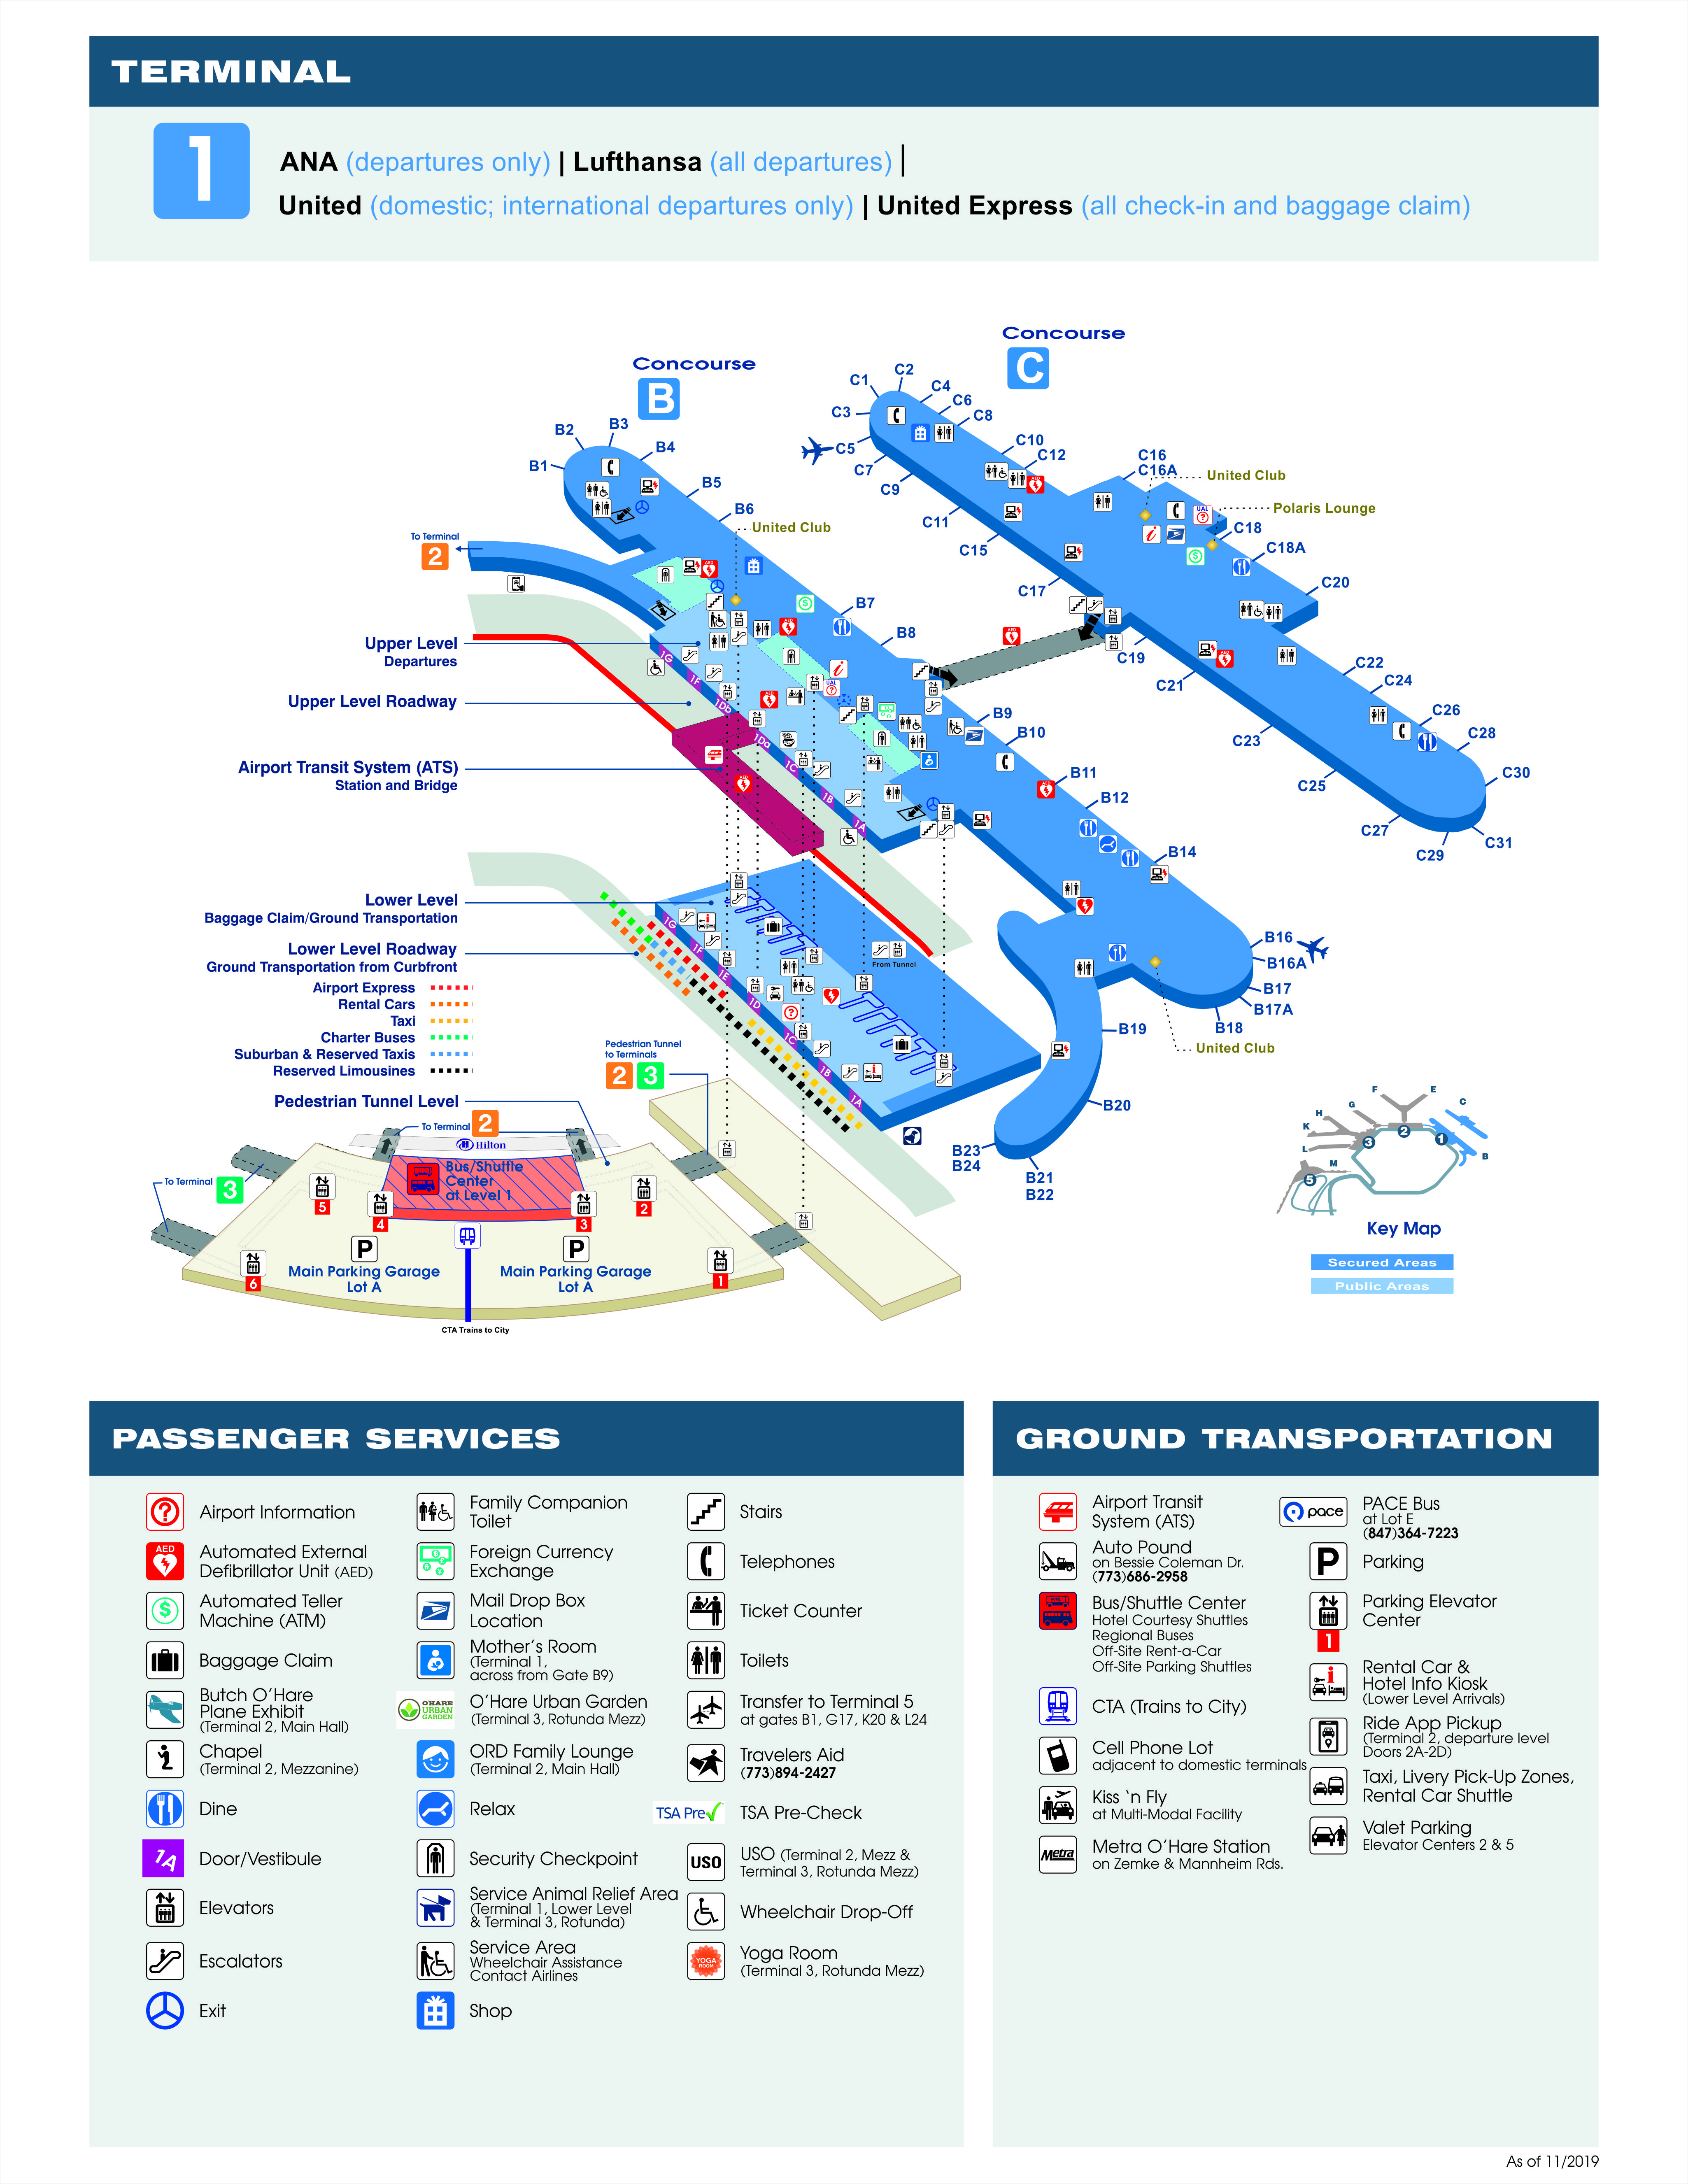 Printable Maps | Chicago O'Hare International Airport (ORD) on o'hare airport map, o'hare restaurant map, o'hare modernization map, o'hare parking map, chicago south lawndale map, o'hare field map, o'hare cargo map, o'hare arrivals map, united airlines o'hare map, o'hare concourse map, o'hare area map, o'hare gate map, chicago regional map with locations, hyatt o'hare map, elgin o'hare map, official o'hare map, o'hare bus shuttle center map, o'hare blue line map, chicago airport map,